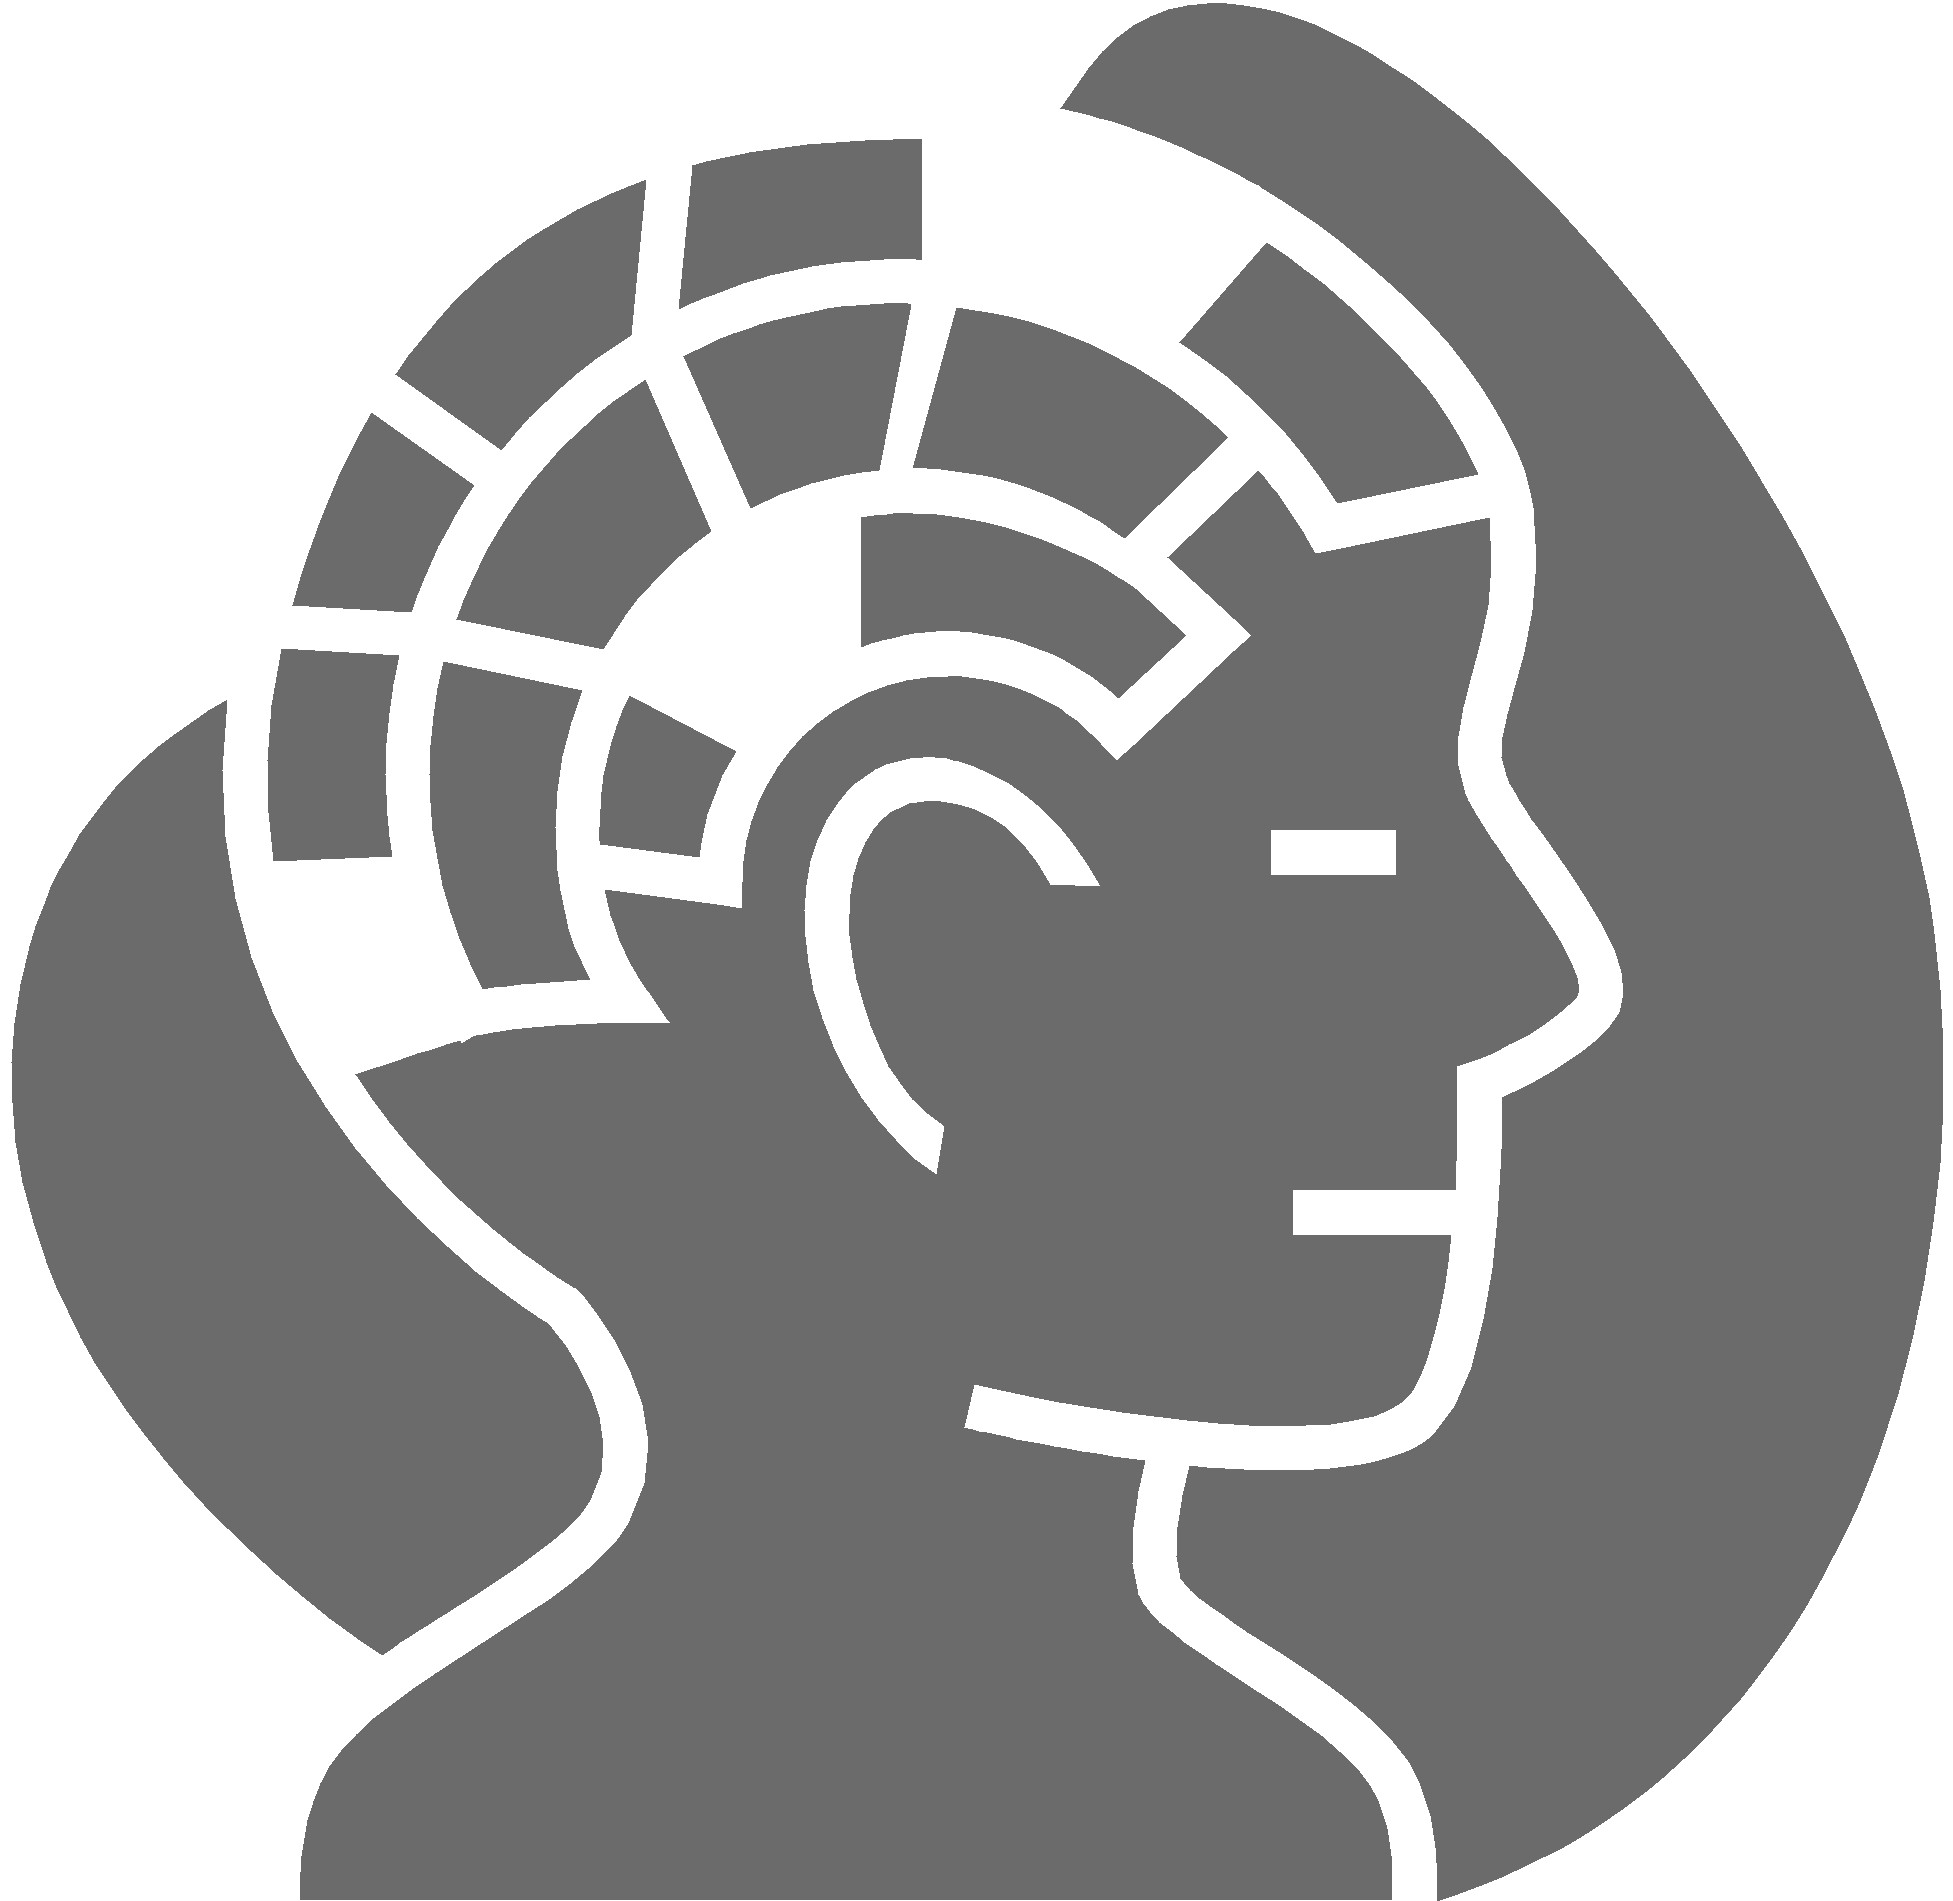 psychology clipart logo